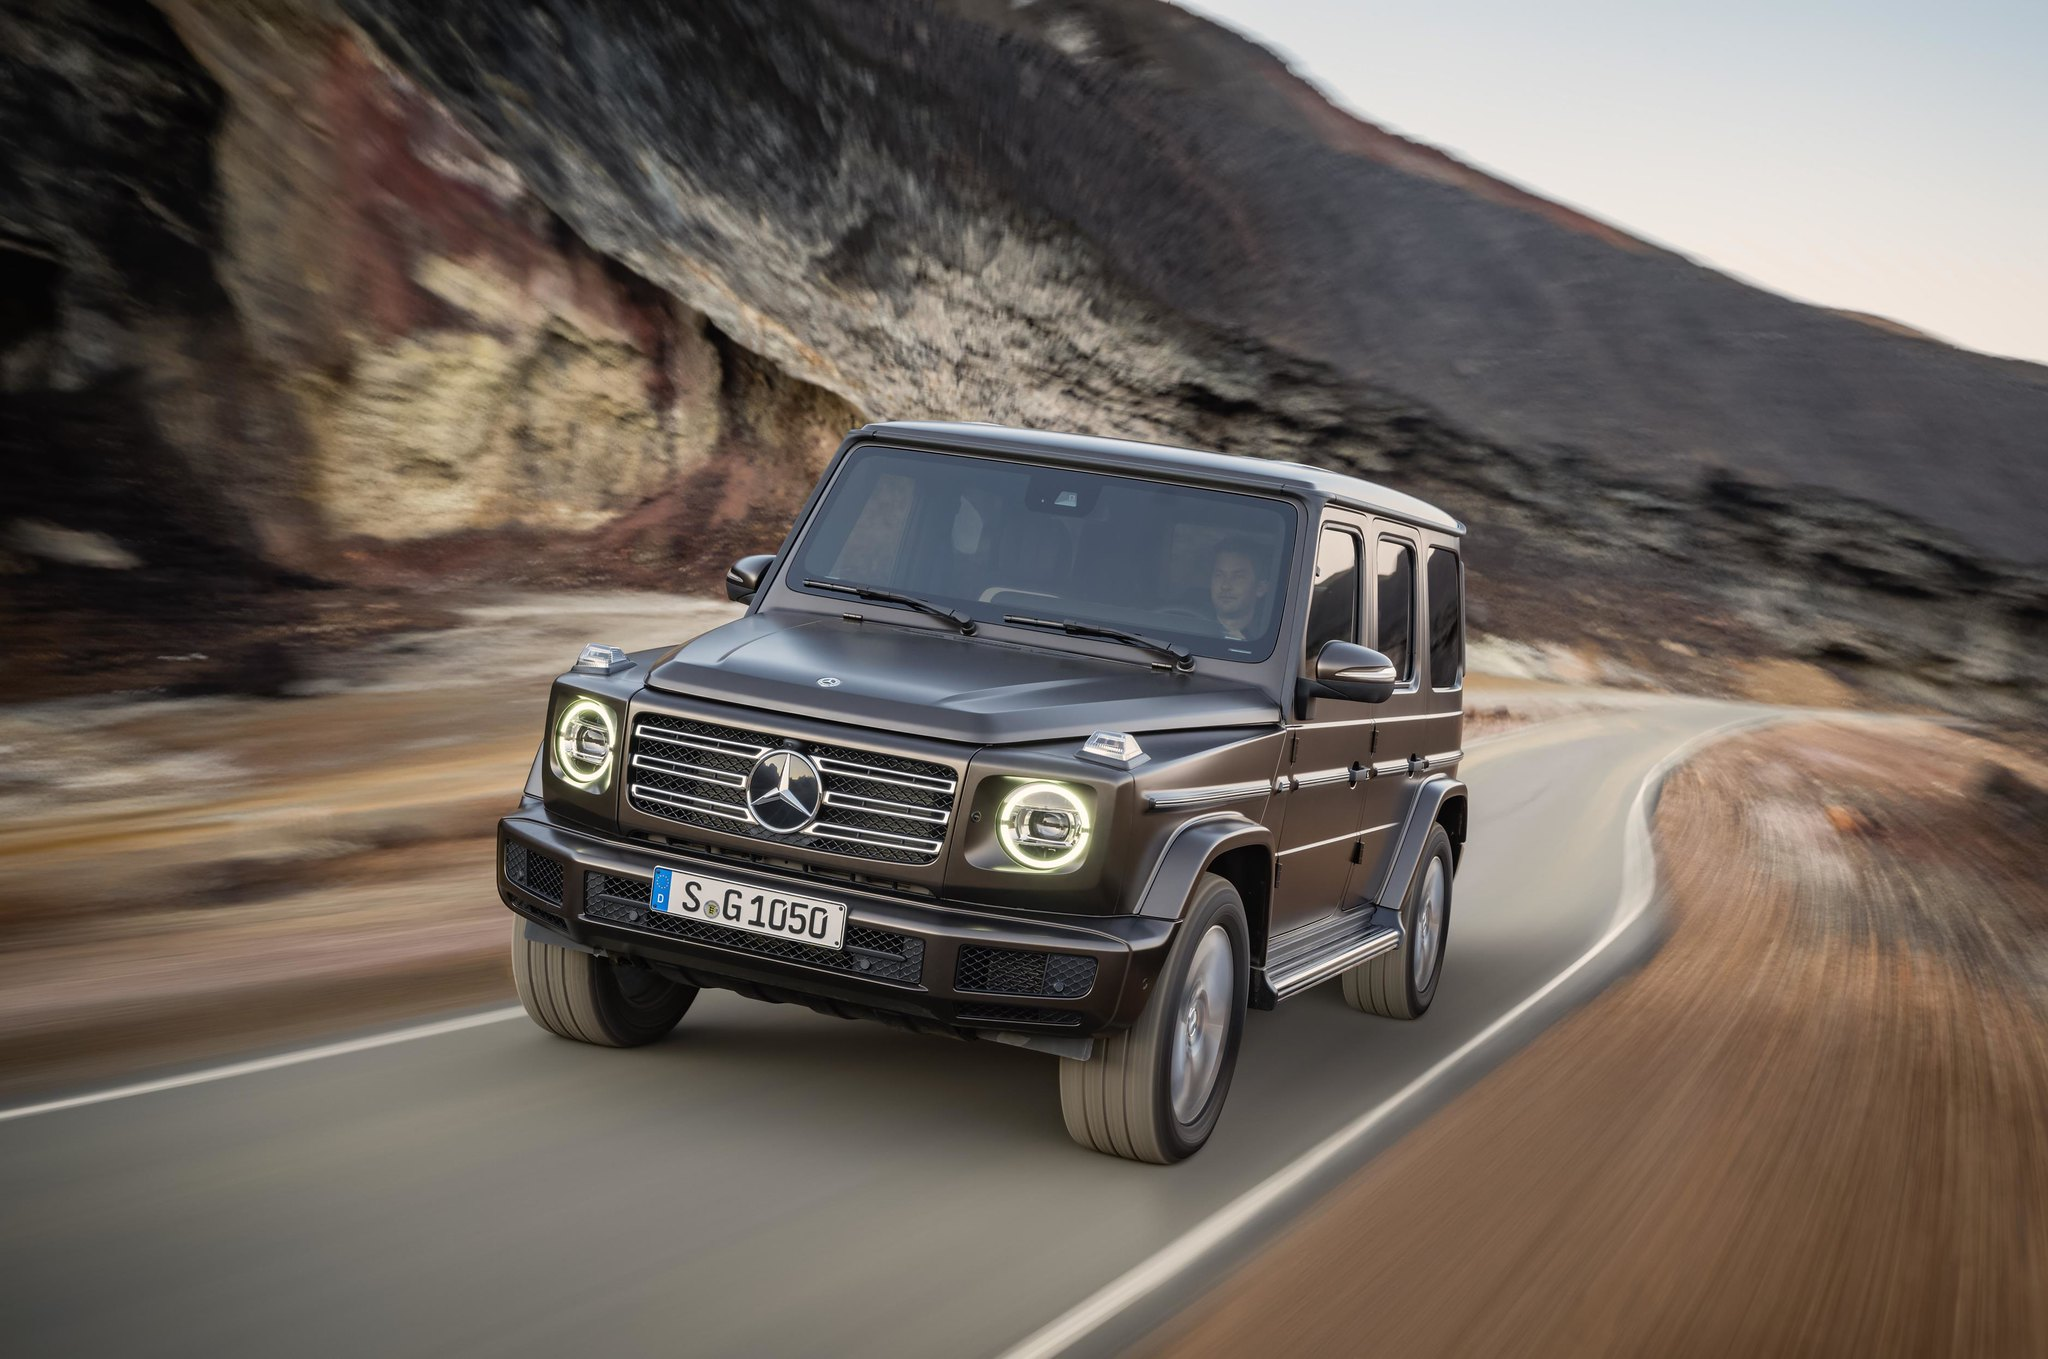 This is the 2019 Mercedes G-Class